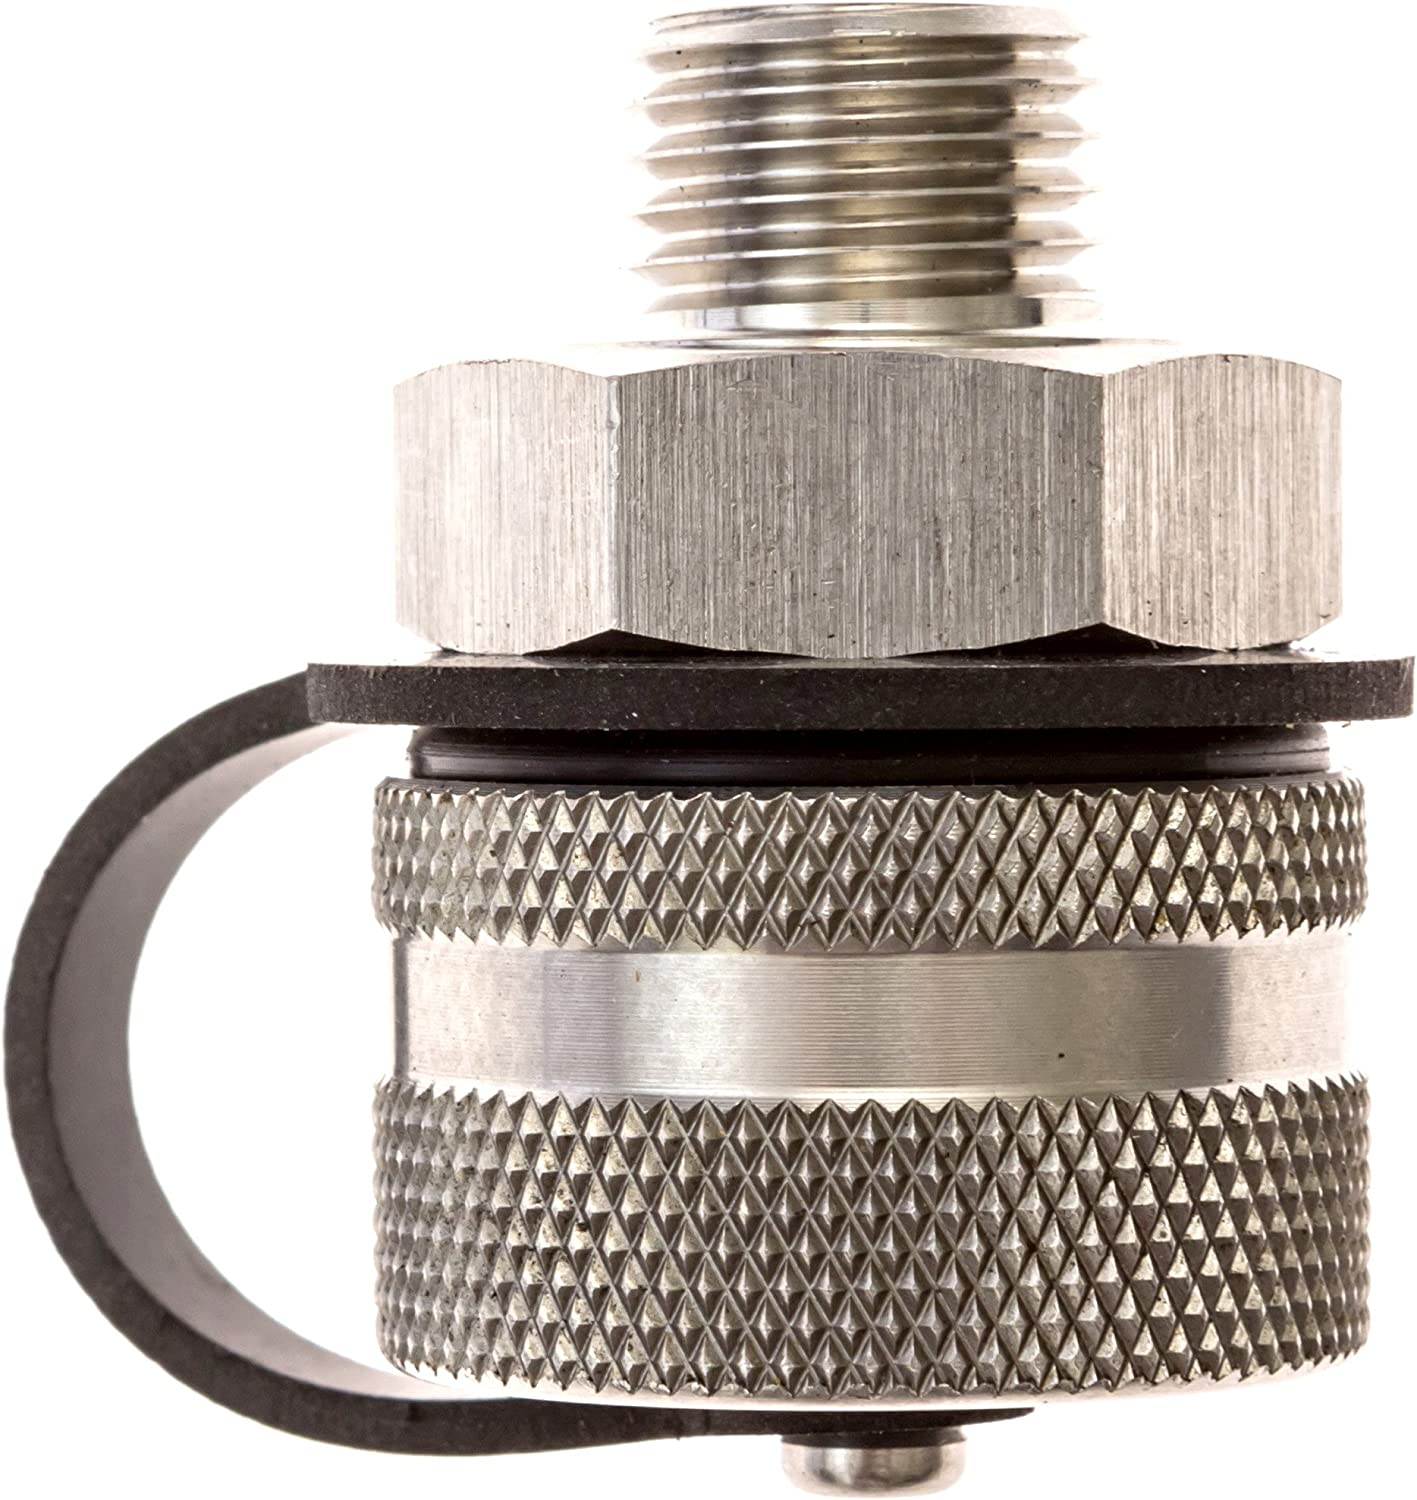 ValvoMax Oil Drain Valve - No Tools, No Mess, Fast Drain - for M16-1.50 - Stainless Drain Hose Attachment